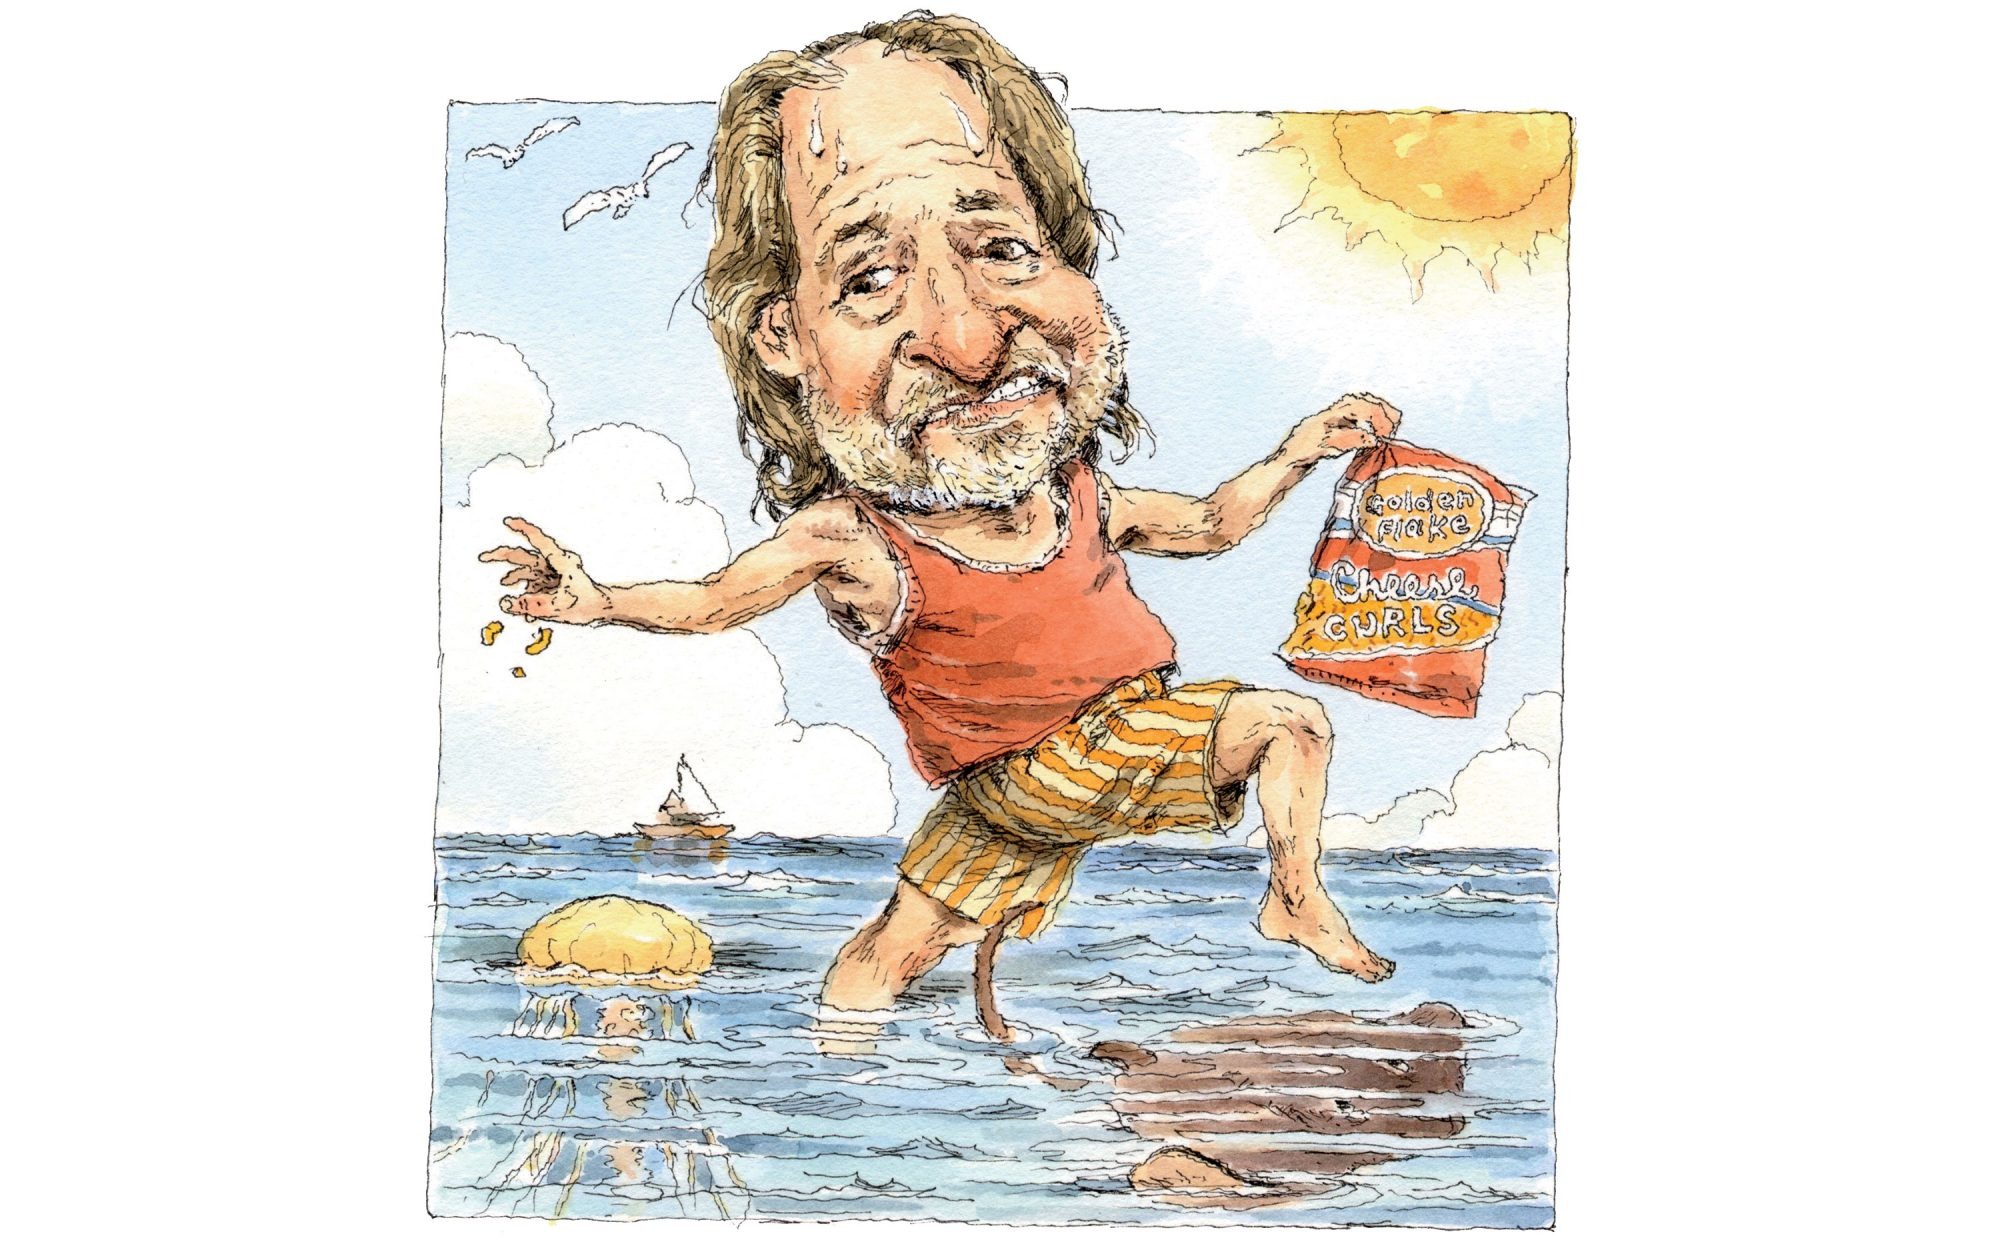 Rick Bragg at the Beach